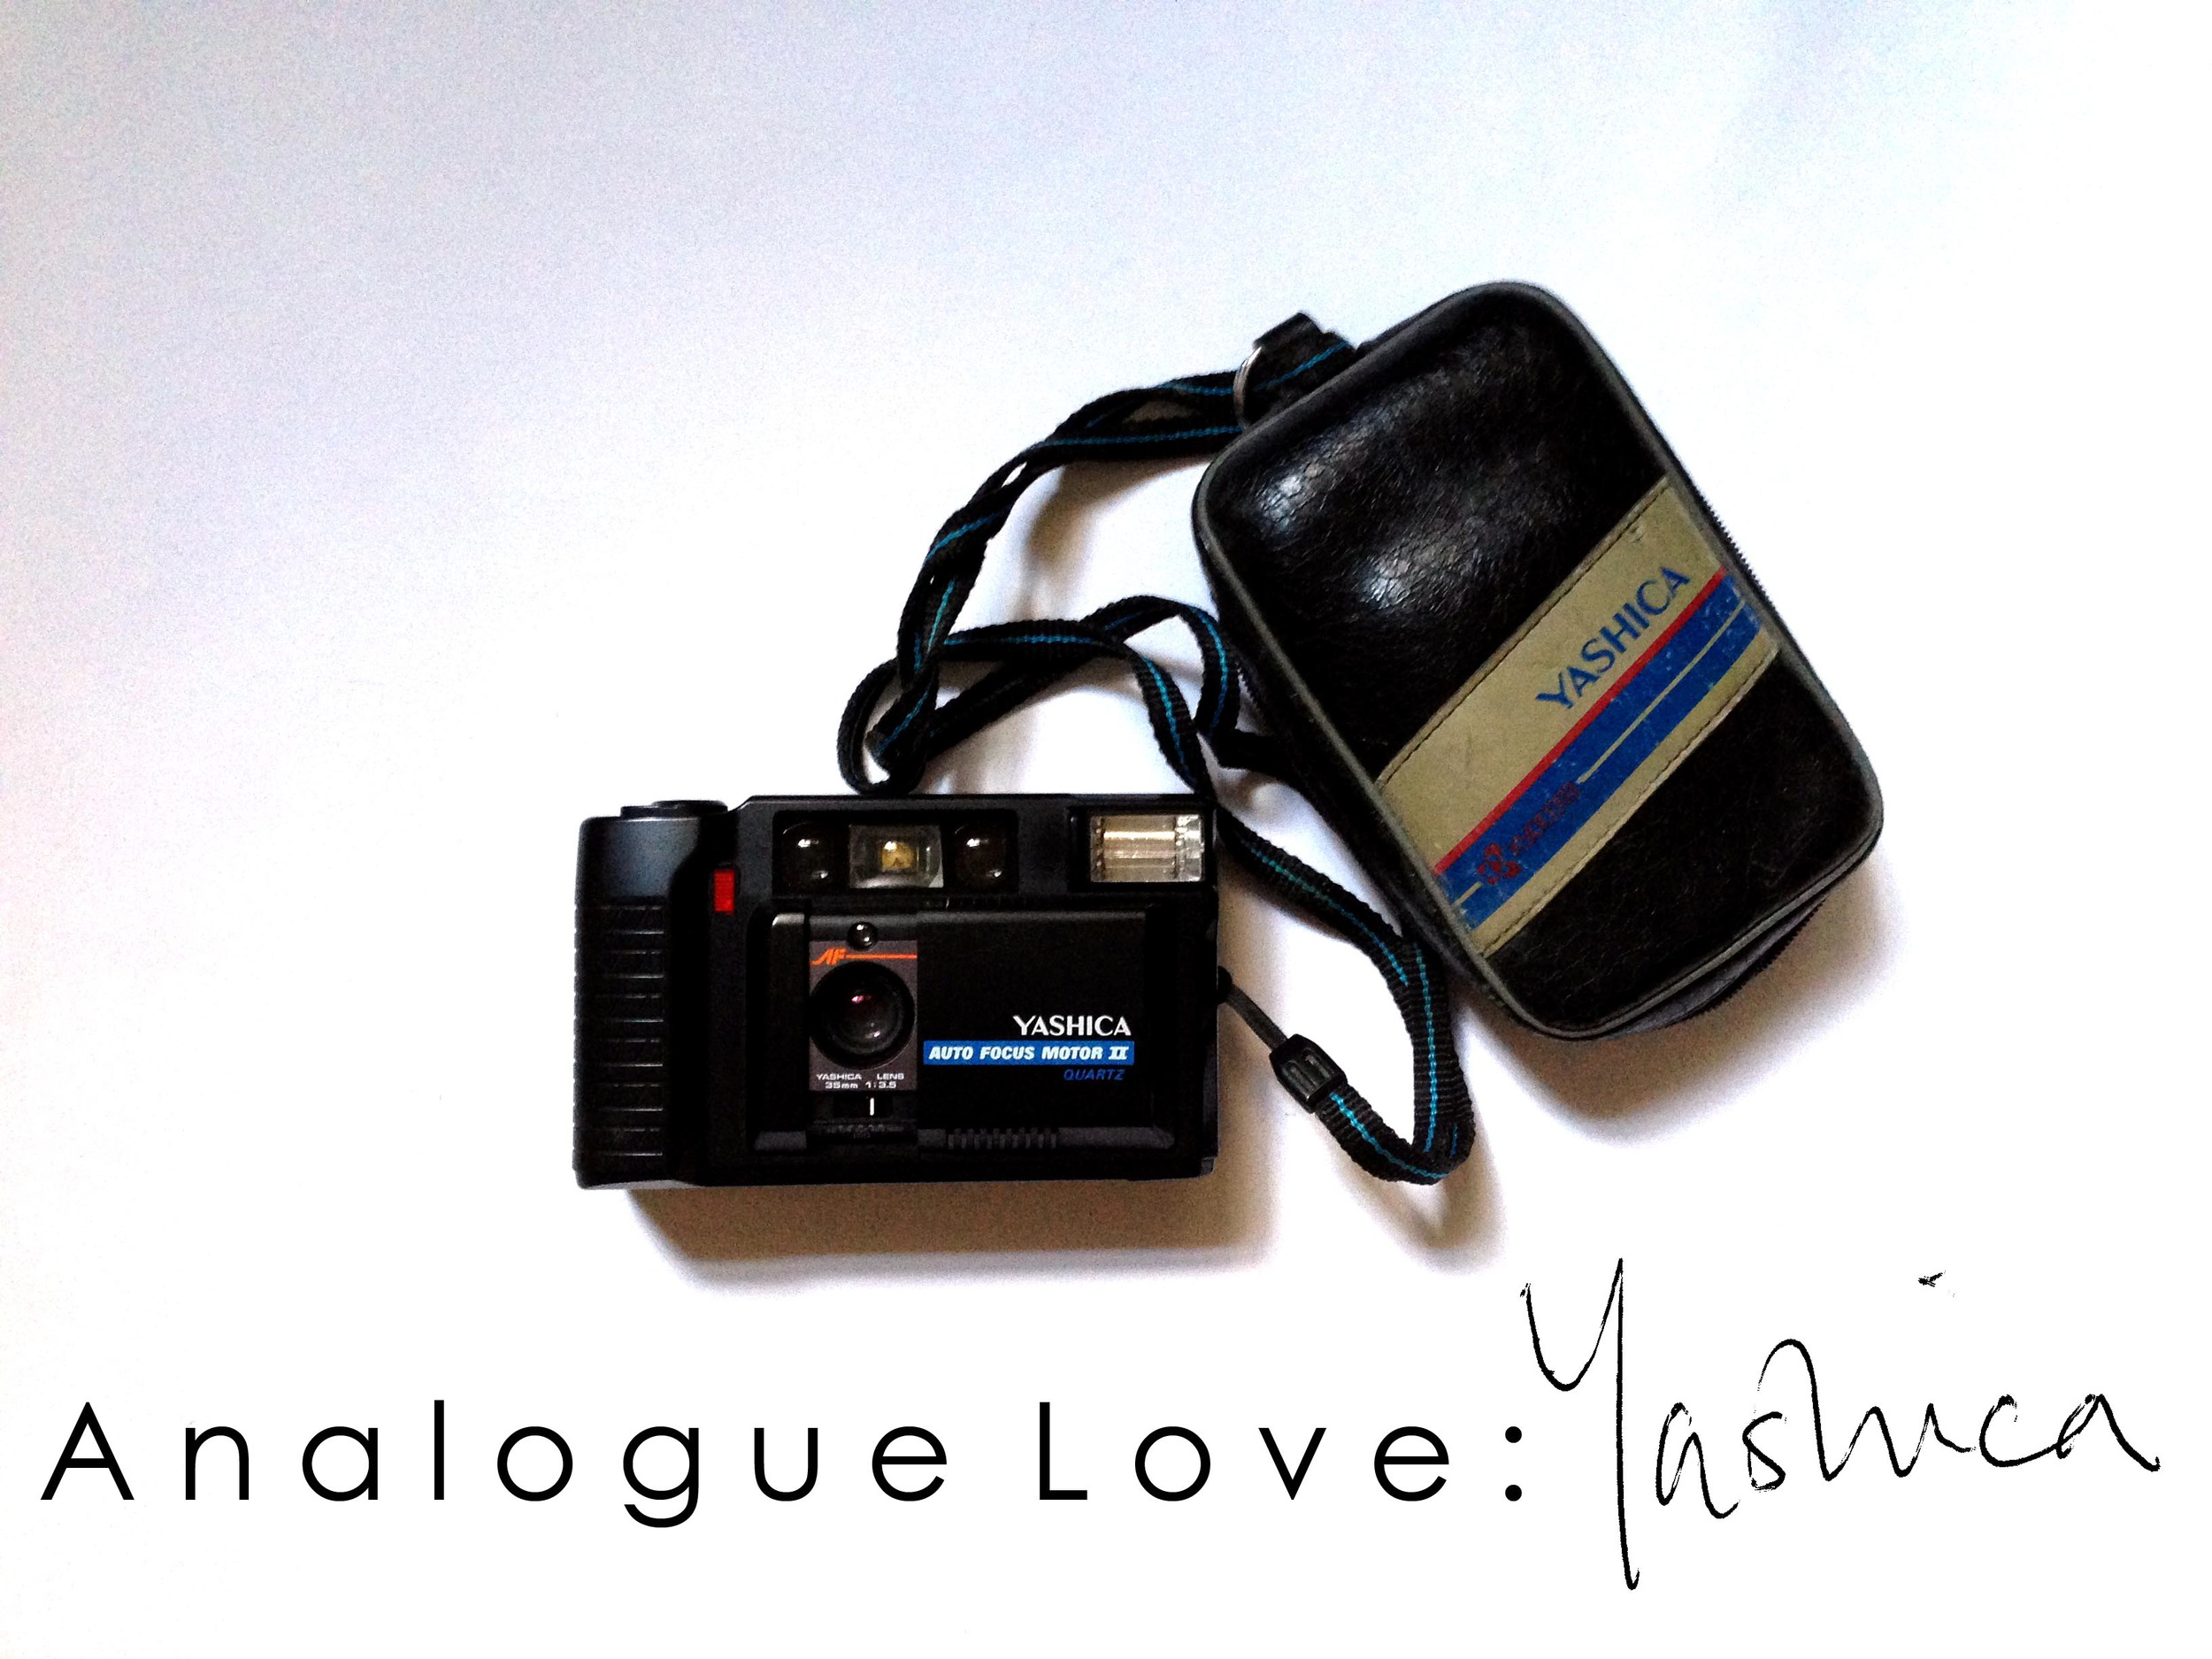 Analogue Love Yashica